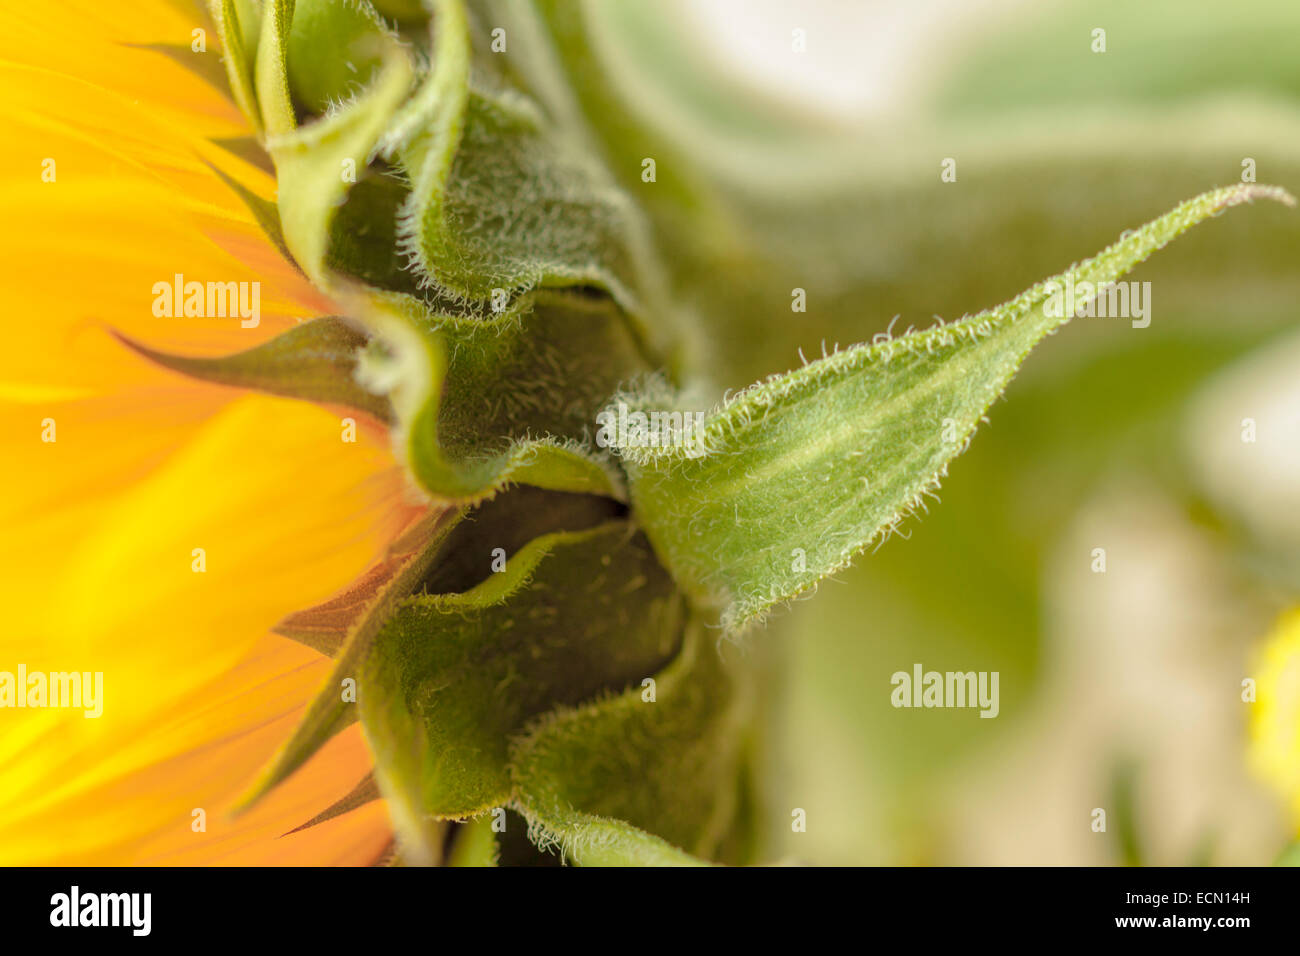 Macro of the hairy leaves of a Sunflower - Helianthus annuus, against an unfocused background. - Stock Image